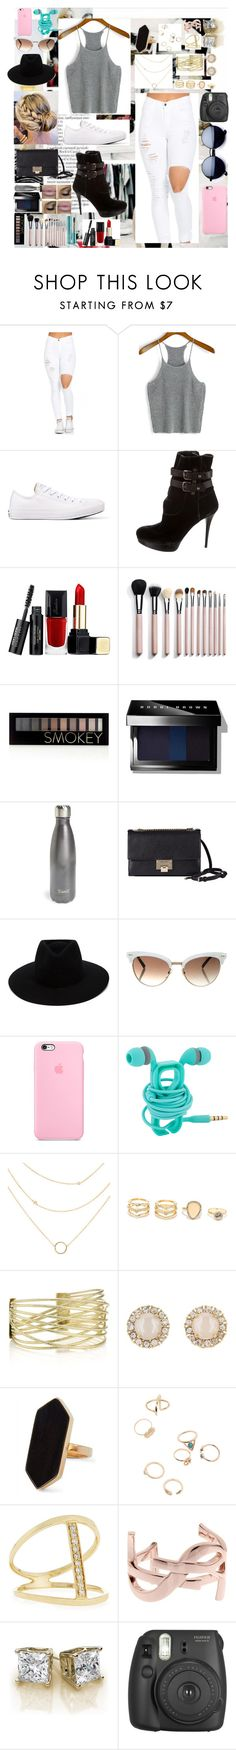 """❤️"" by lilygriffiths44 ❤ liked on Polyvore featuring Longchamp, Converse, Stuart Weitzman, Guerlain, Forever 21, Bobbi Brown Cosmetics, S'well, Jimmy Choo, rag & bone and Gucci"